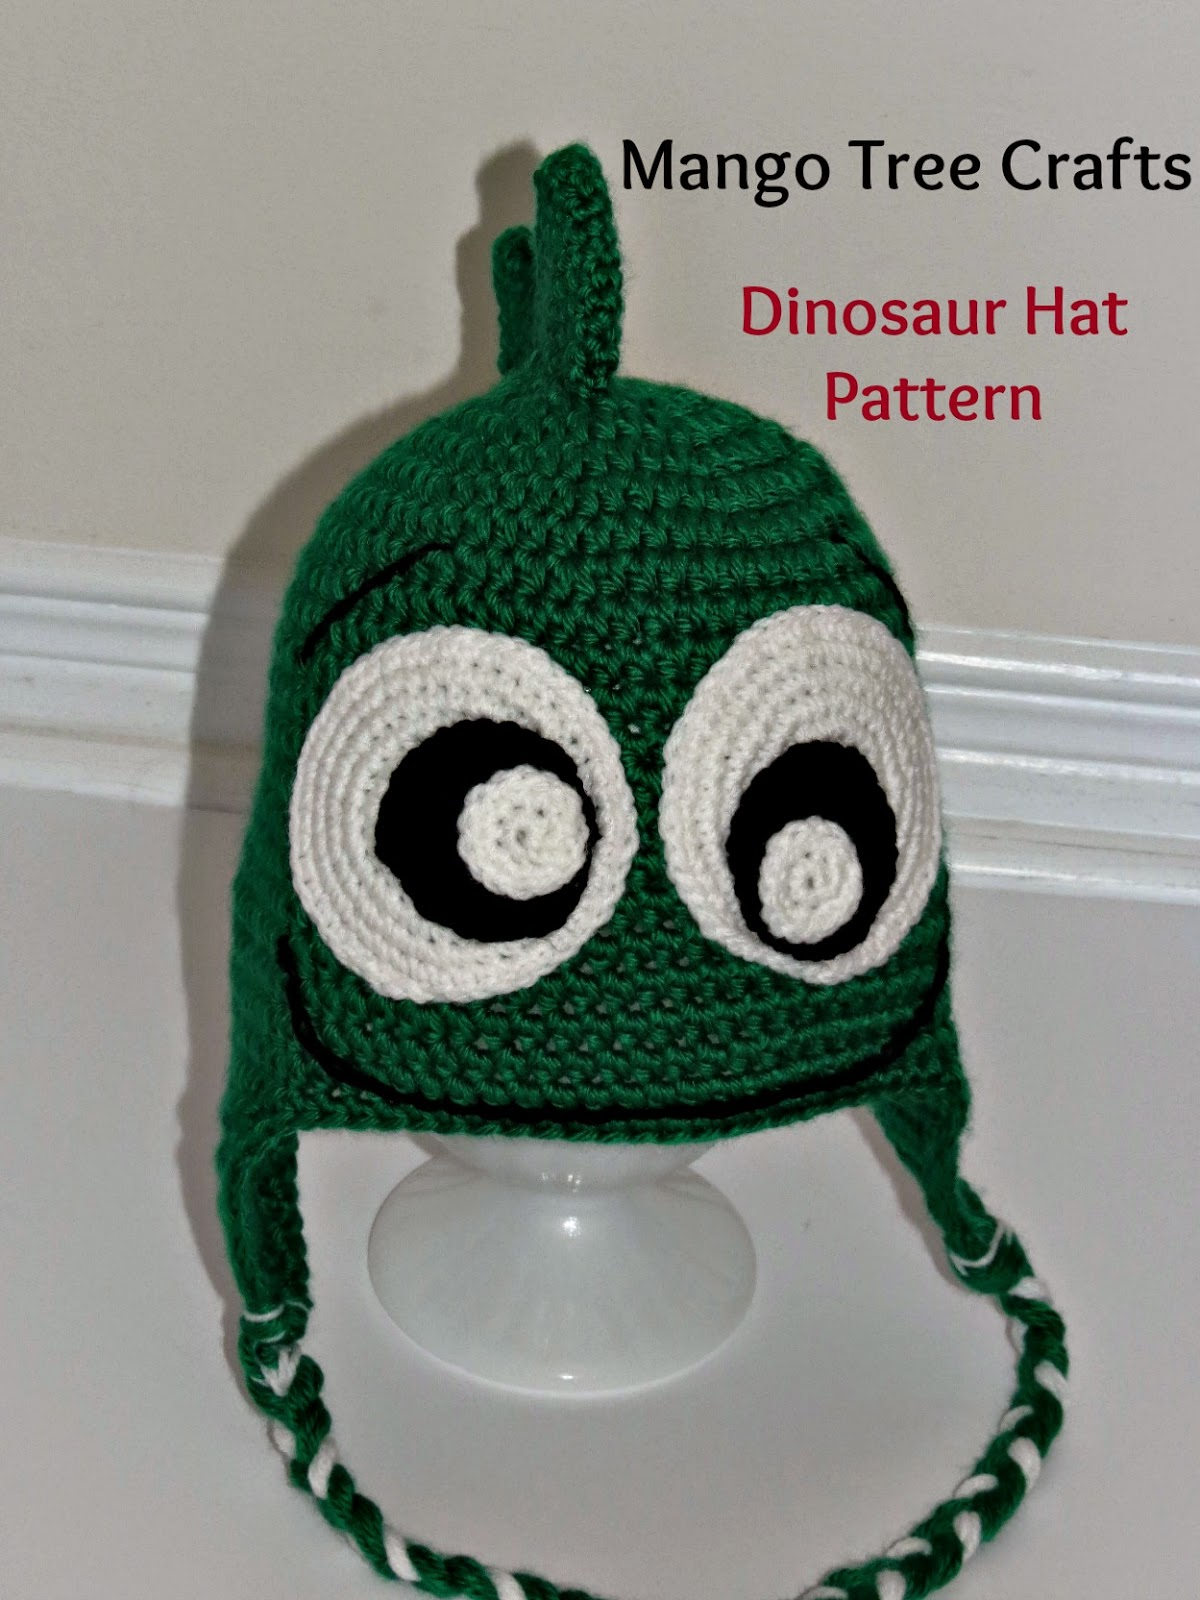 Mango Tree Crafts: Crochet Dinosaur Hat Pattern